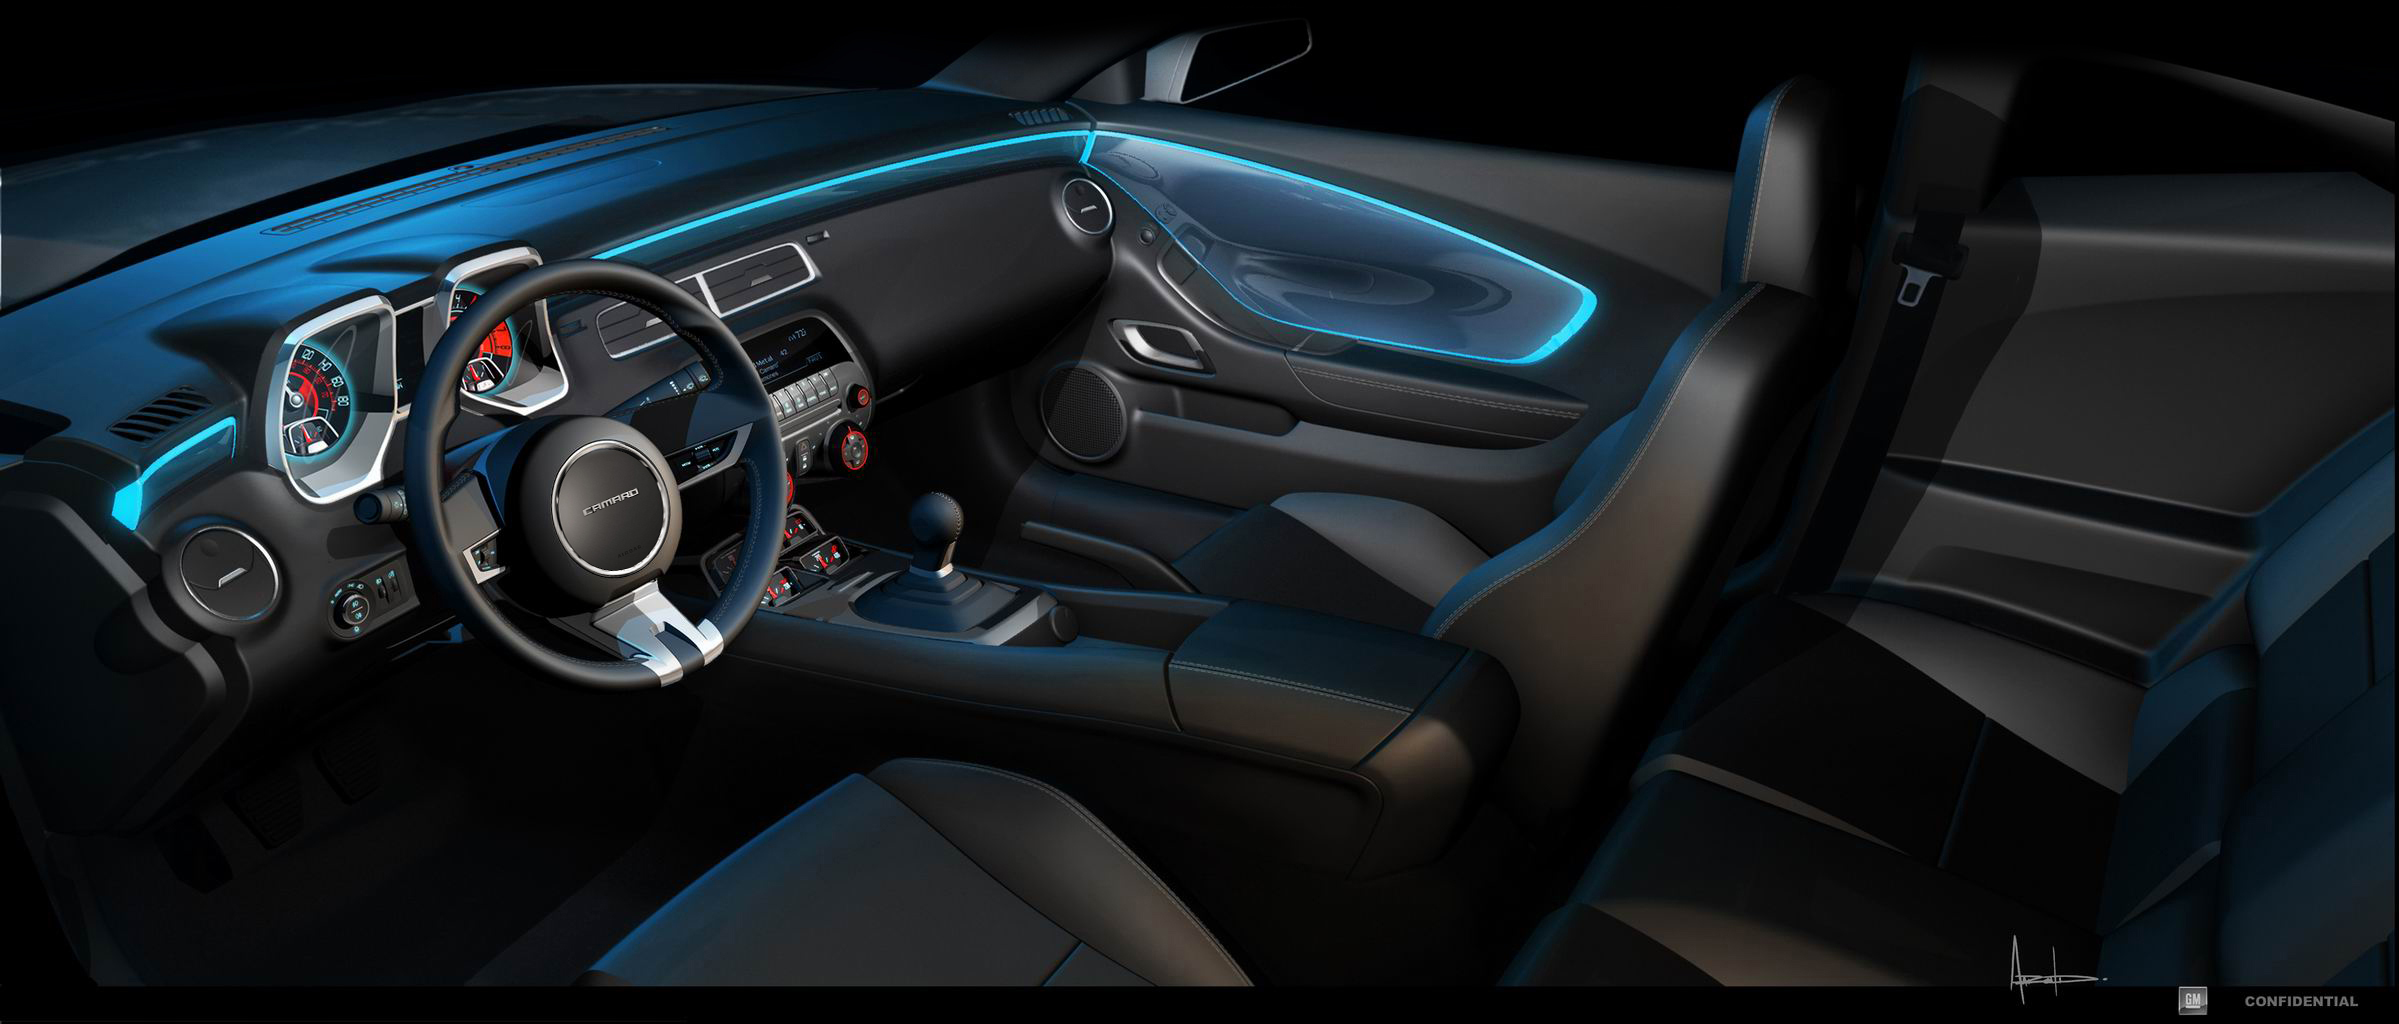 72 c10 wiper motor wiring diagram  72  free engine image